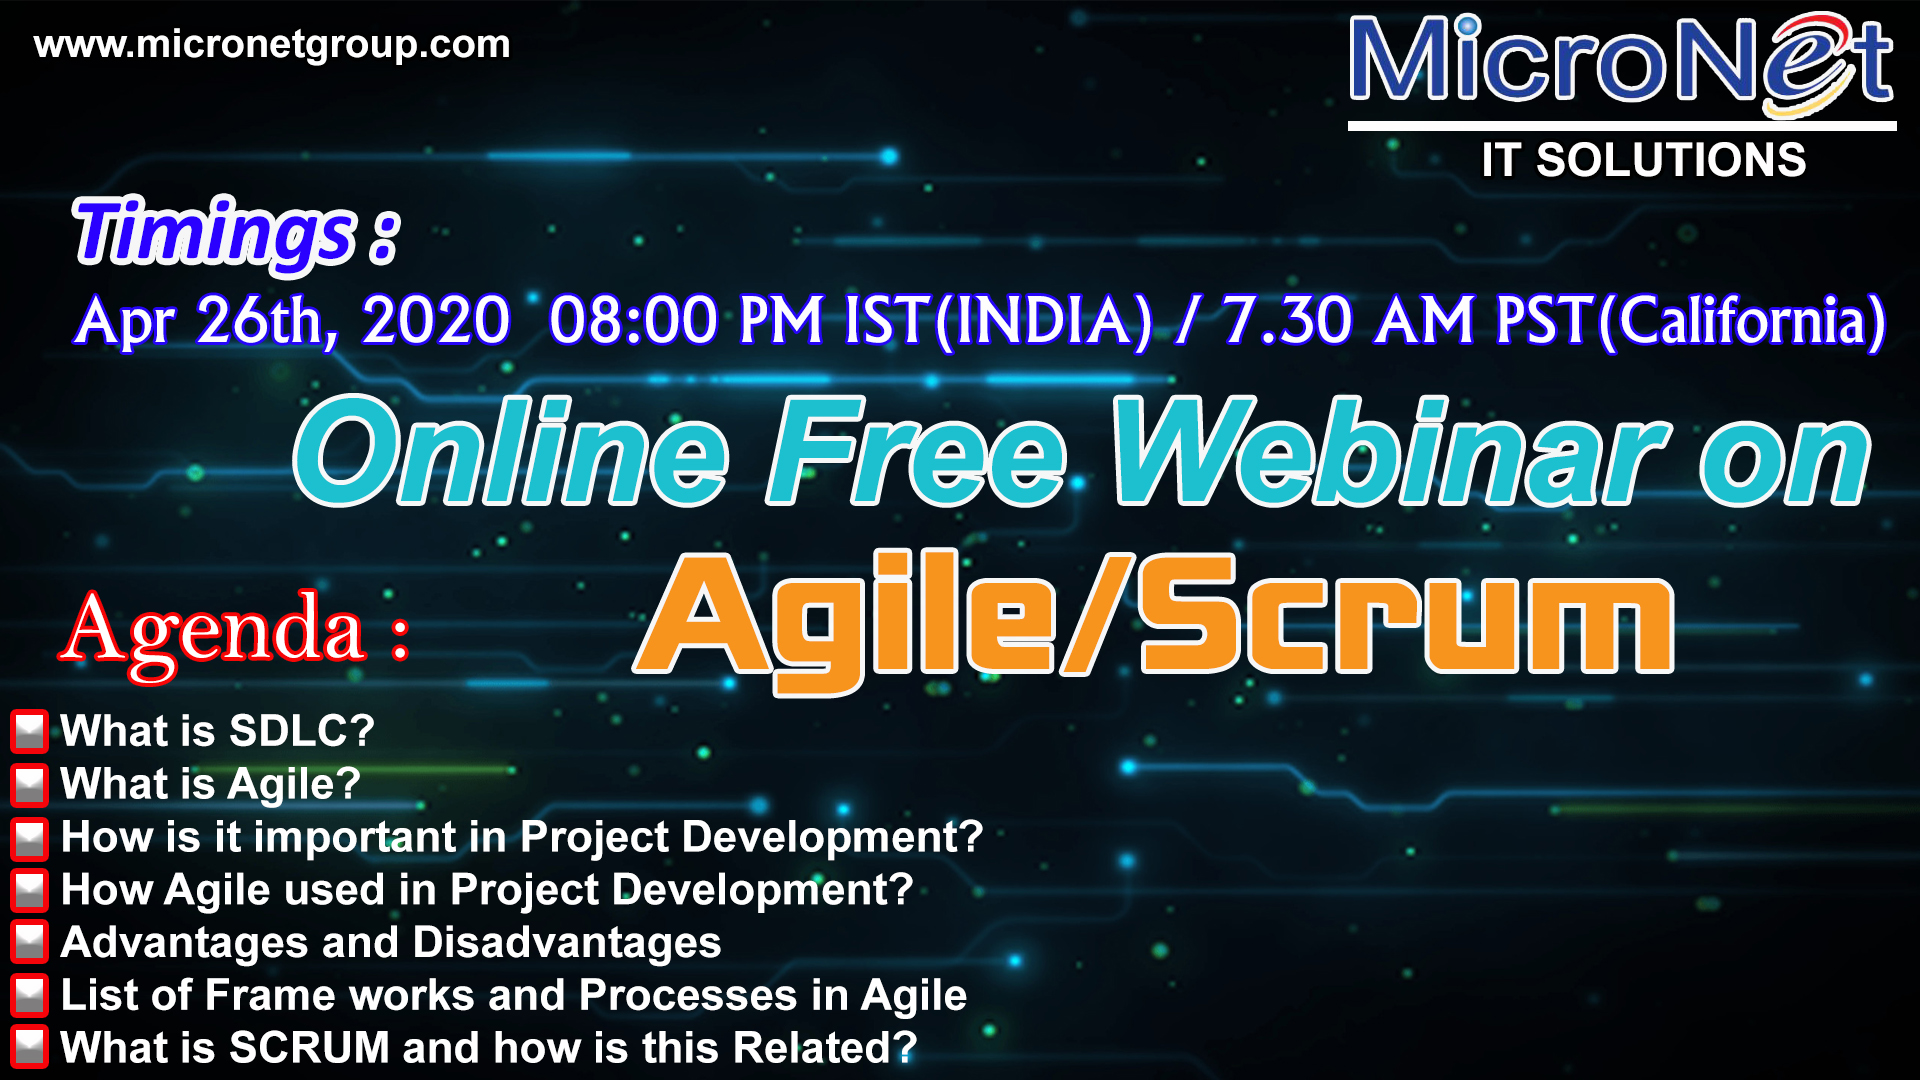 Introduction to Agile/Scrum